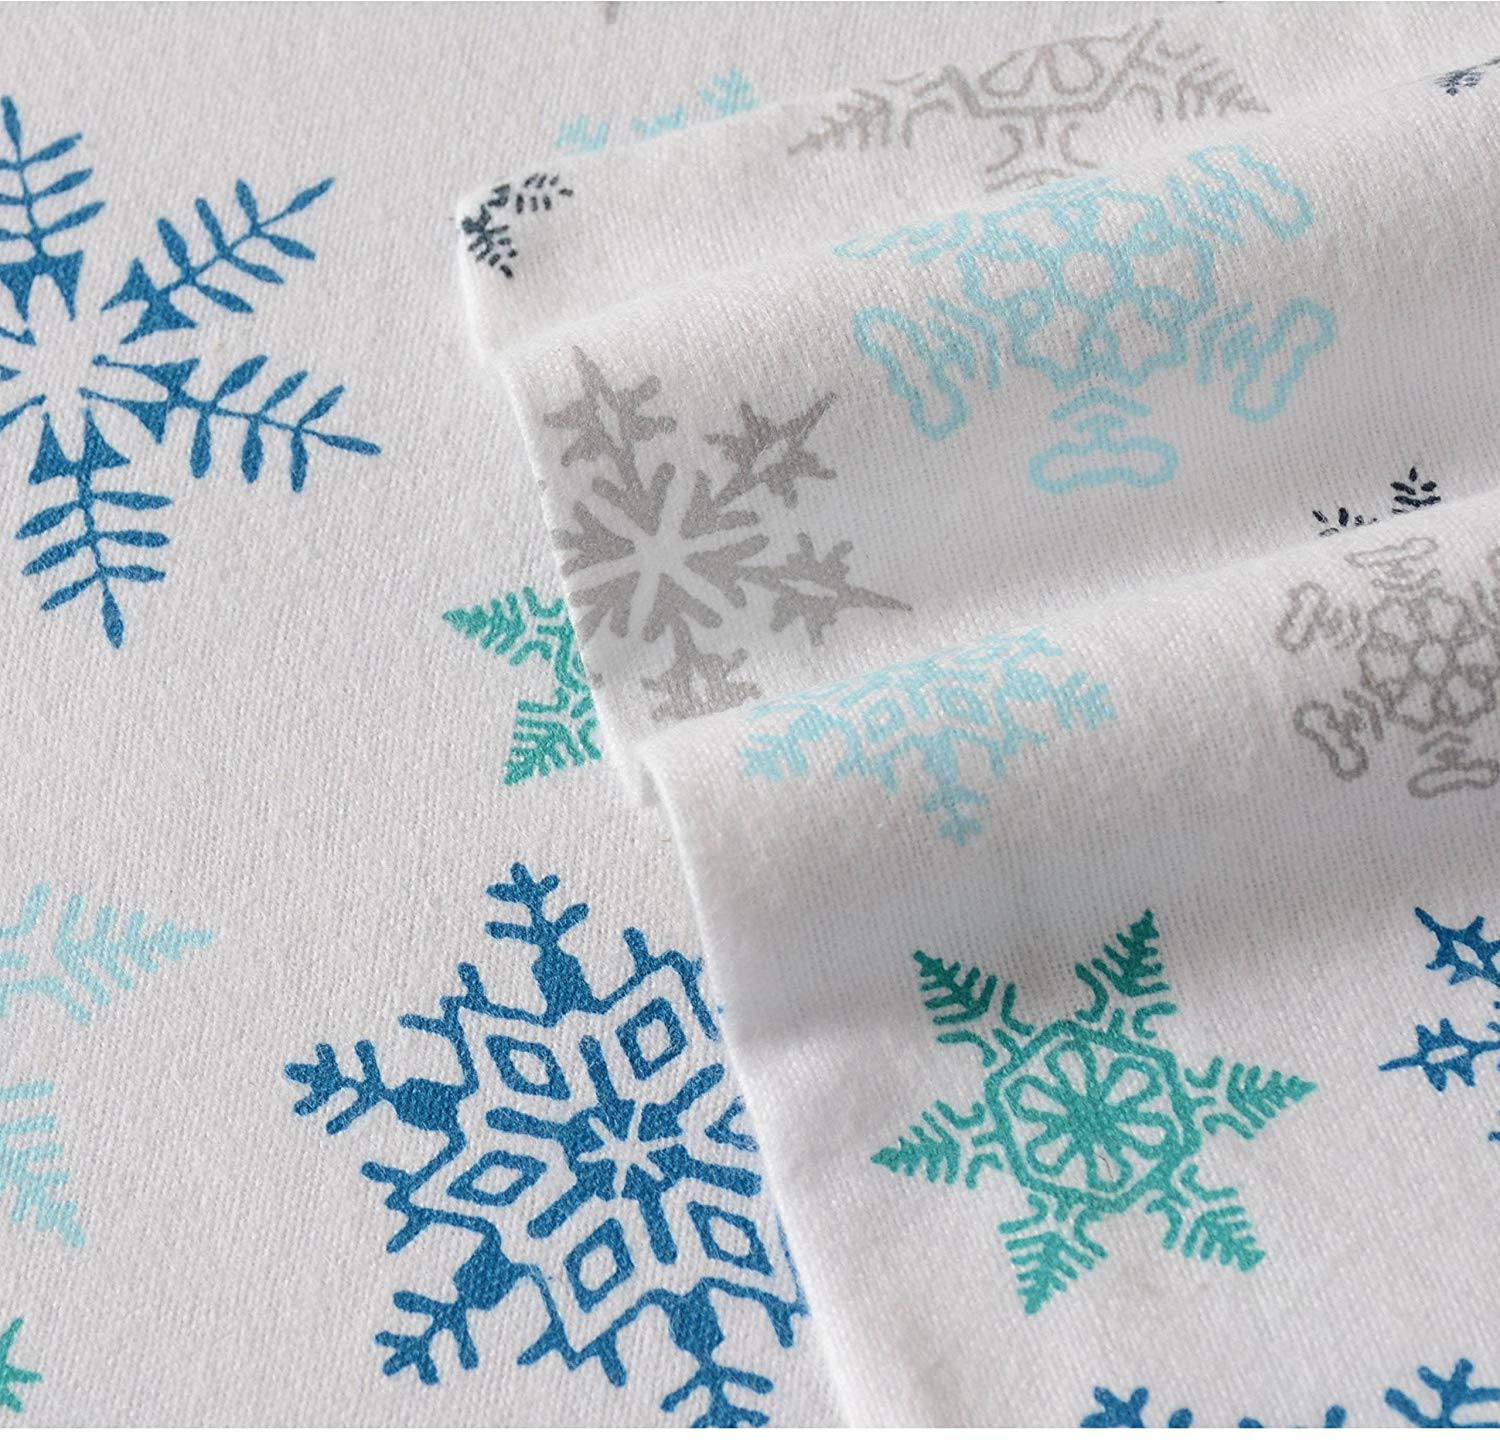 D&A 4 Piece Multi Snowflakes Theme Sheets King Set, Beautiful All Over Falling Snowlakes Print, Winter Season Bedding, Fully Elasticized Fitted, Deep Pocket, Cotton Flannel